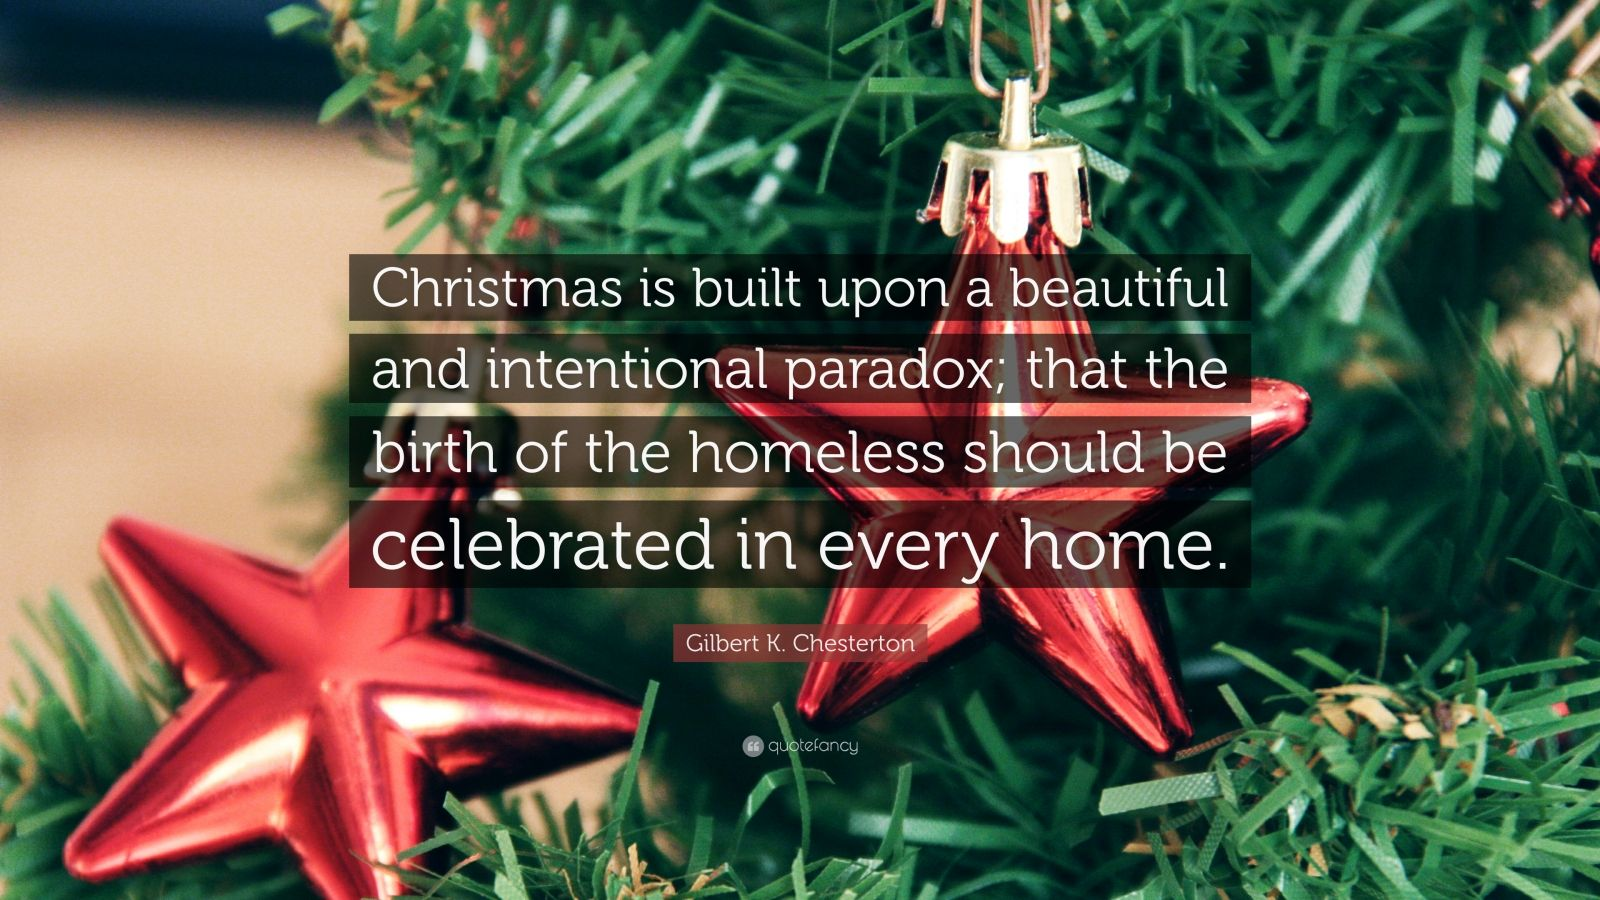 """Gilbert K. Chesterton Quote: """"Christmas is built upon a beautiful and intentional paradox; that the birth of the homeless should be celebrated in every home."""""""